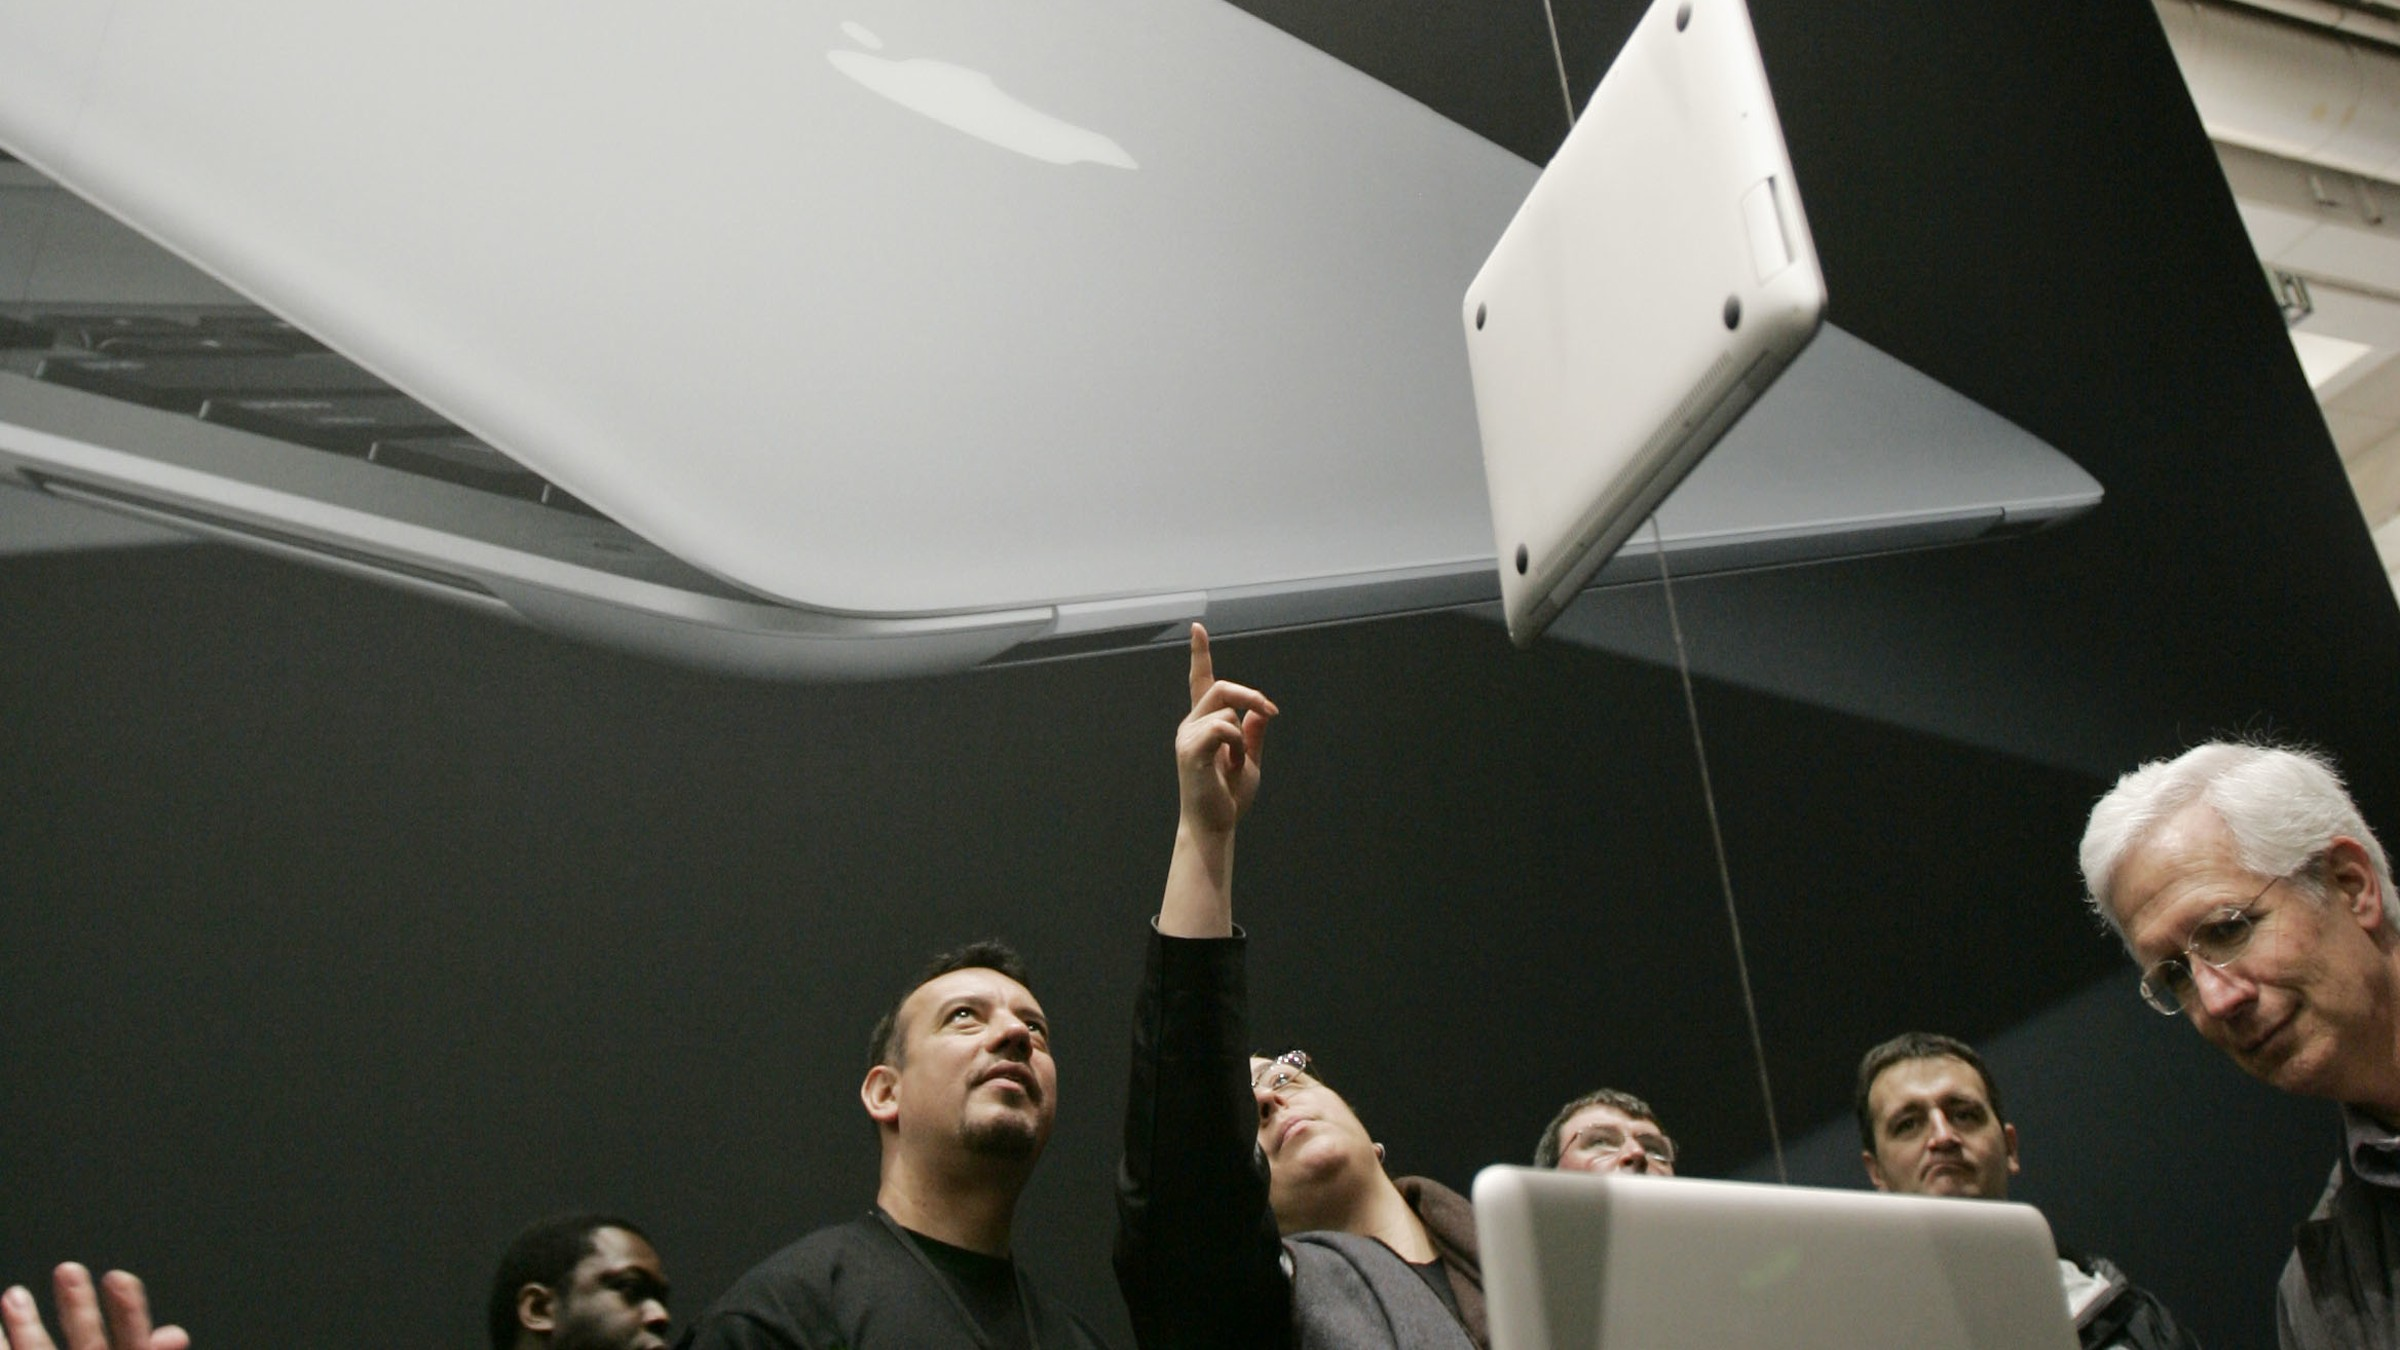 Attendees look at a MacBook Air display at the MacWorld Conference in San Francisco, Tuesday, Jan. 15, 2008. The super-slim new laptop is less than an inch thick and turns on the moment it's opened. (AP Photo/Paul Sakuma)